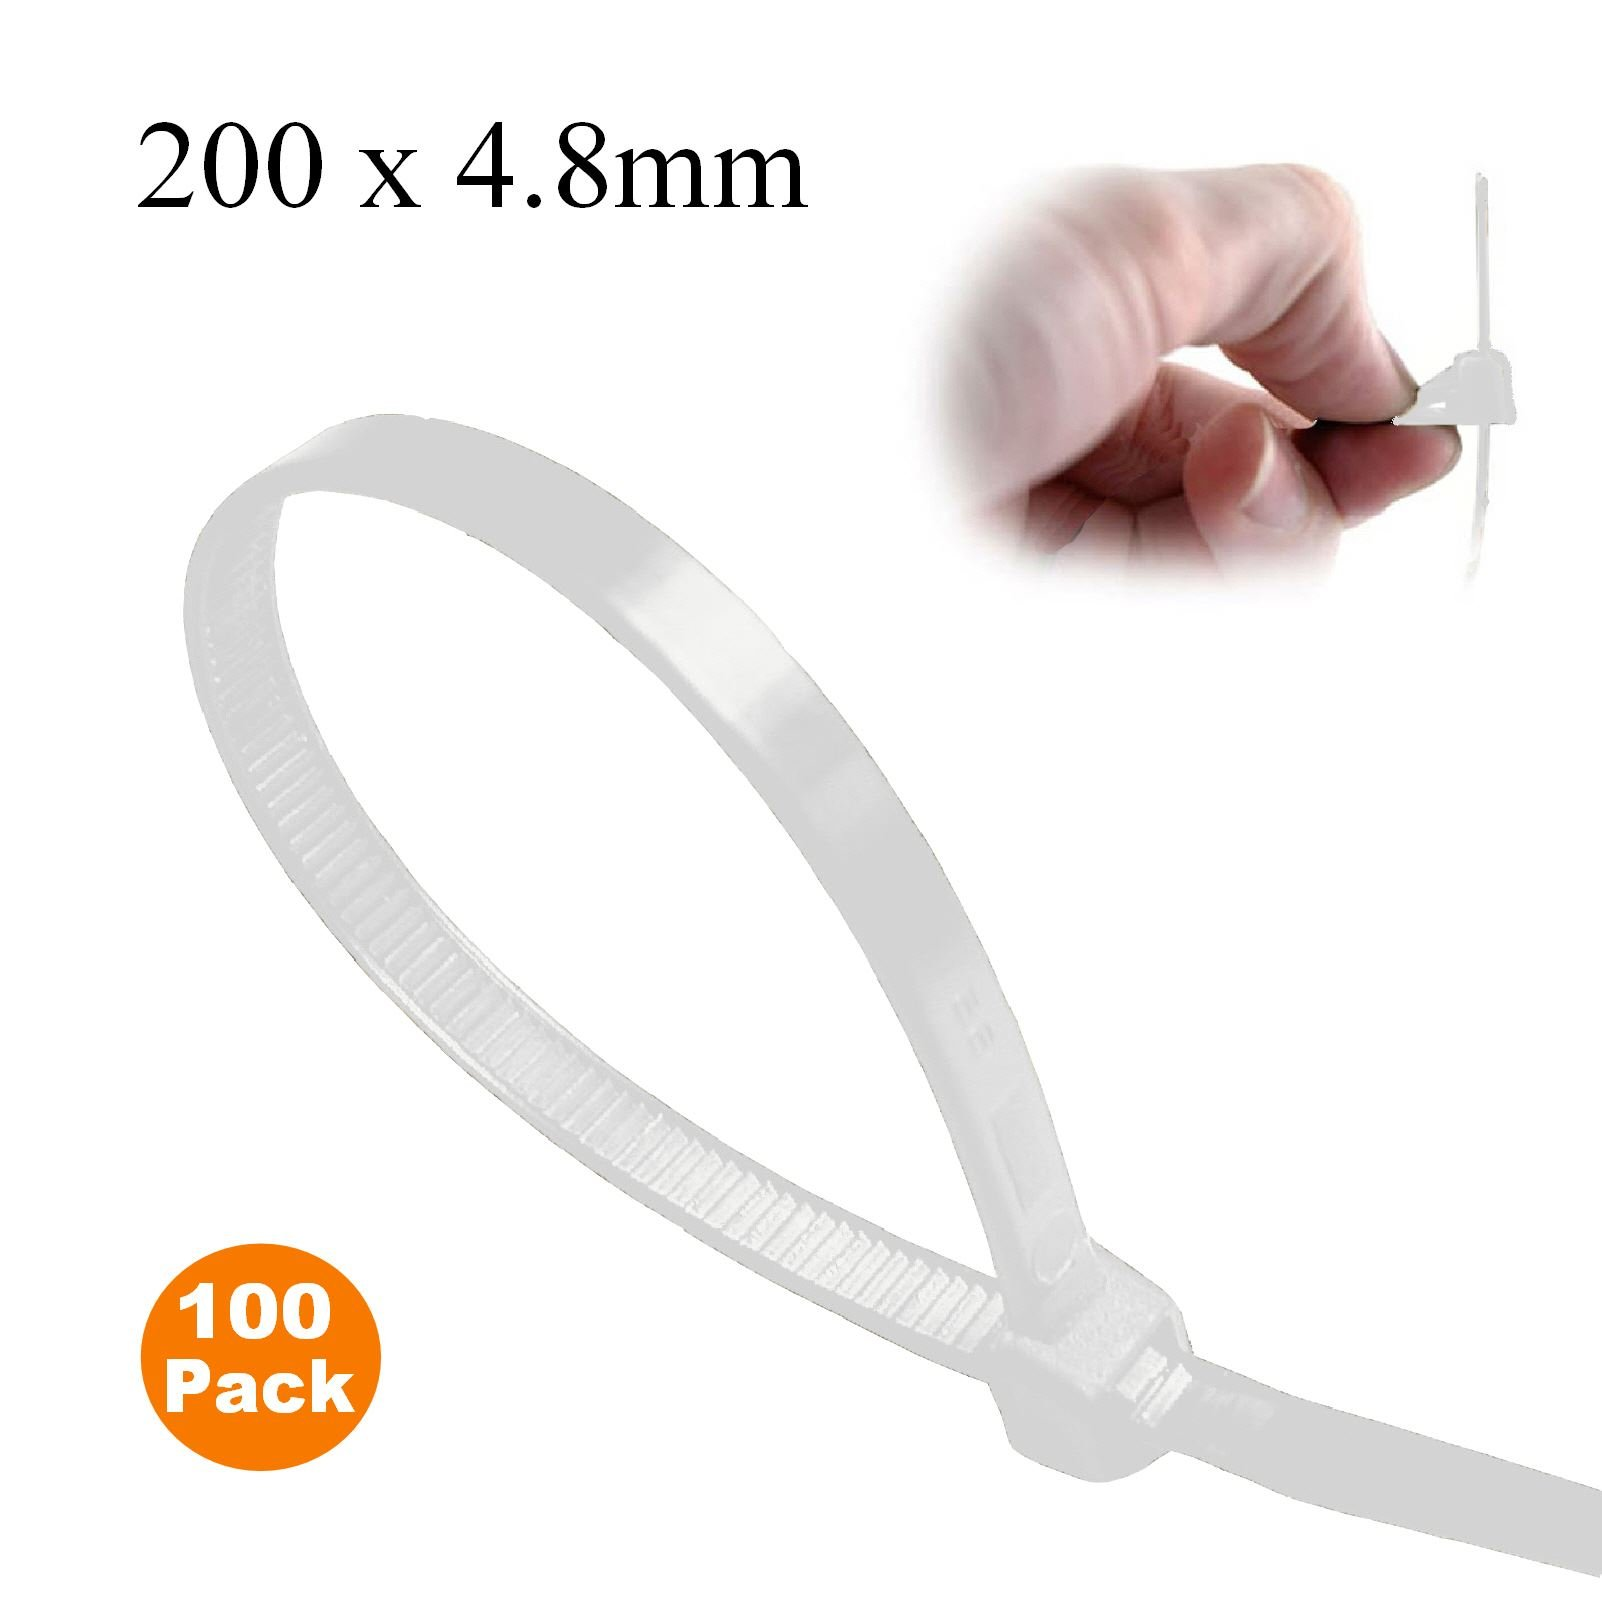 100 x Natural Releasable Cable Ties 200mm x 4.8mm Reusable Wire Tidy Zip Straps